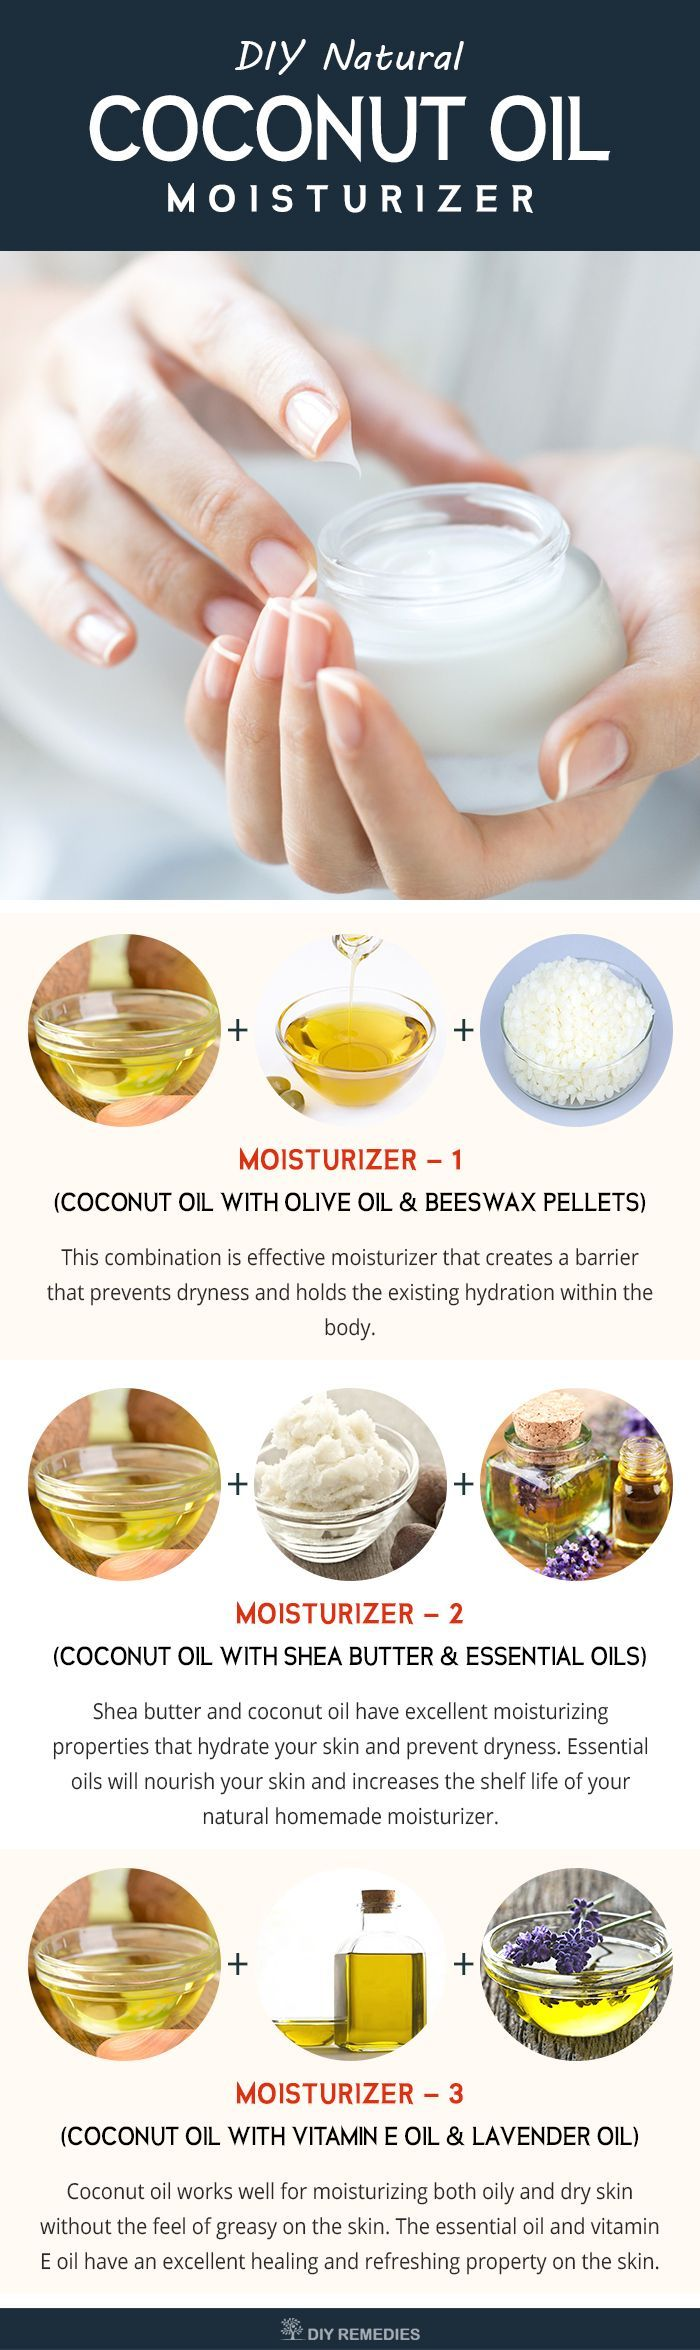 DIY Coconut Oil Skin Moisturizer    Moisturizers will play a key role in making the skin smooth, young and supple by hydrating and soothing the skin. Many cosmetic moisturizers contain chemicals that moisturize your skin but in a longer run cause some side effects like over drying than before.   #moisturize #coconutoil